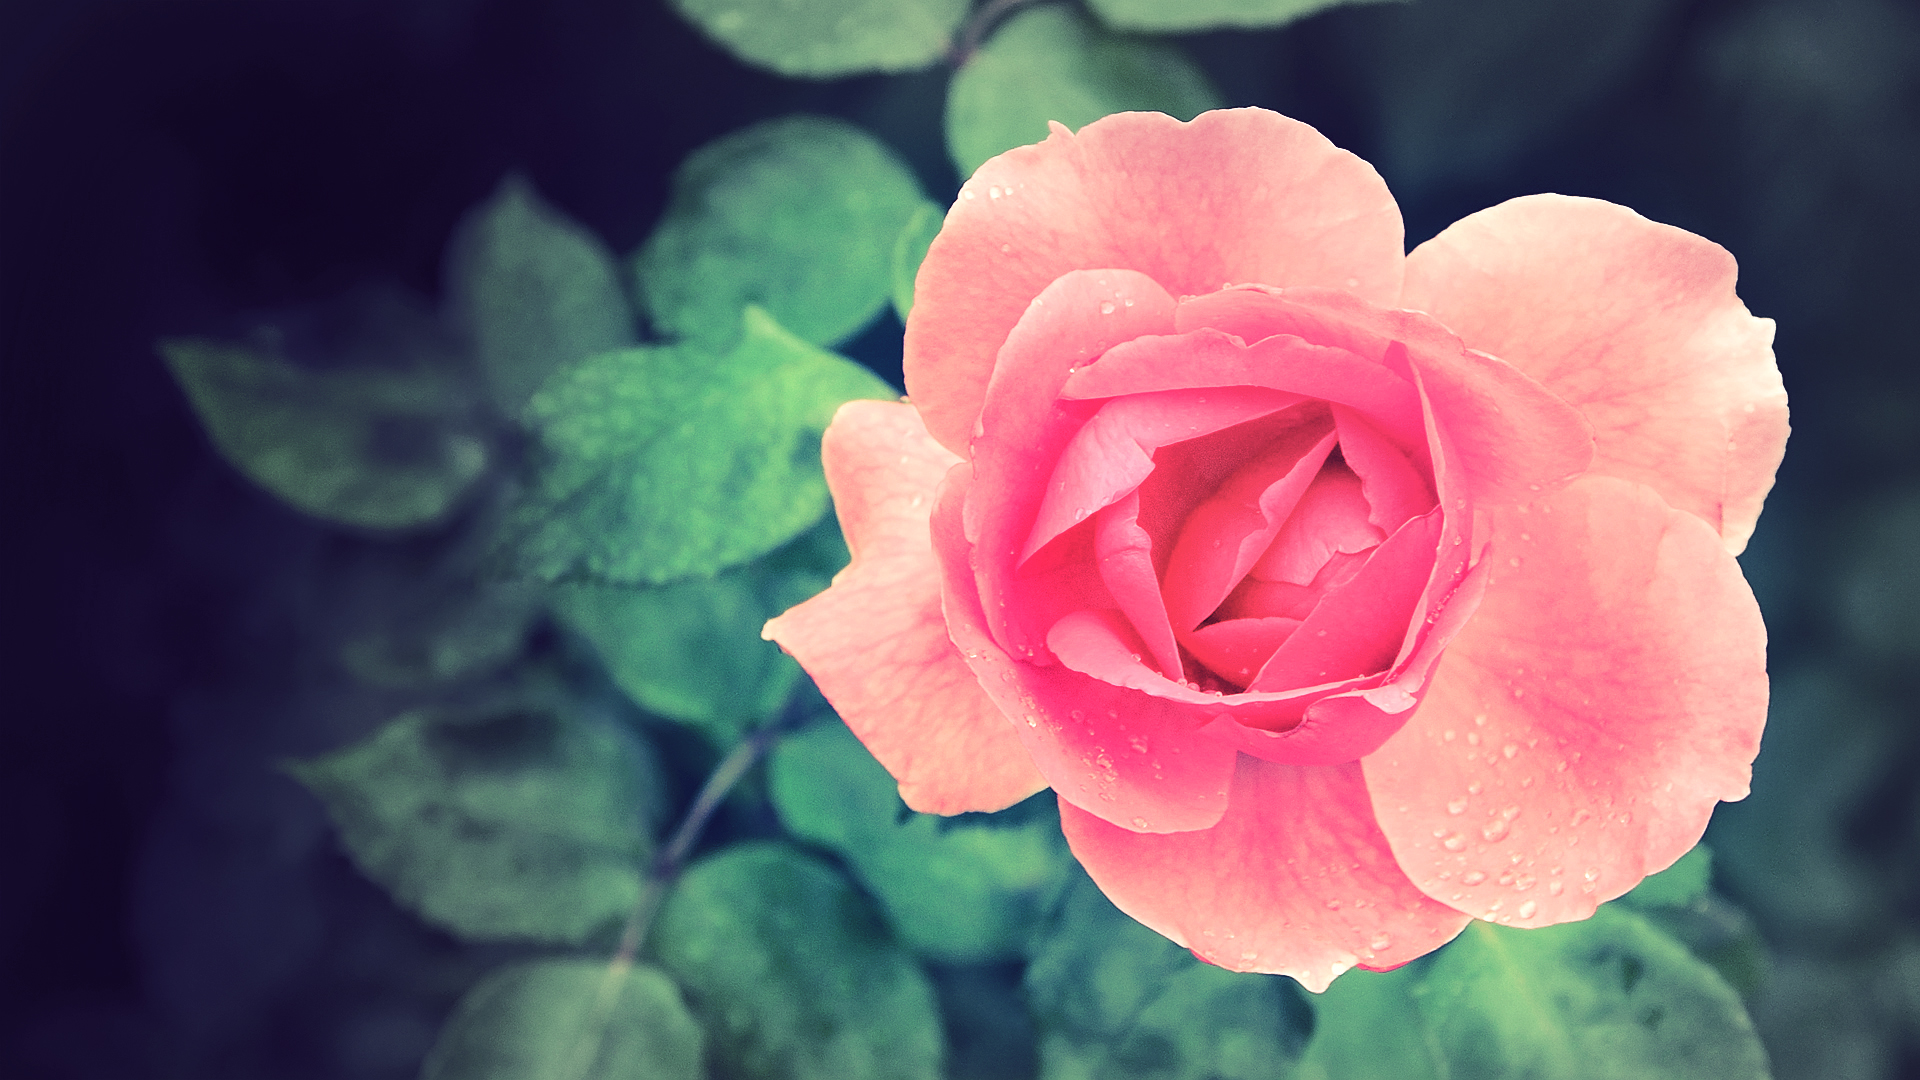 hipster wallpaper pink roses Gallery Pink Roses Wallpaper Tumblr